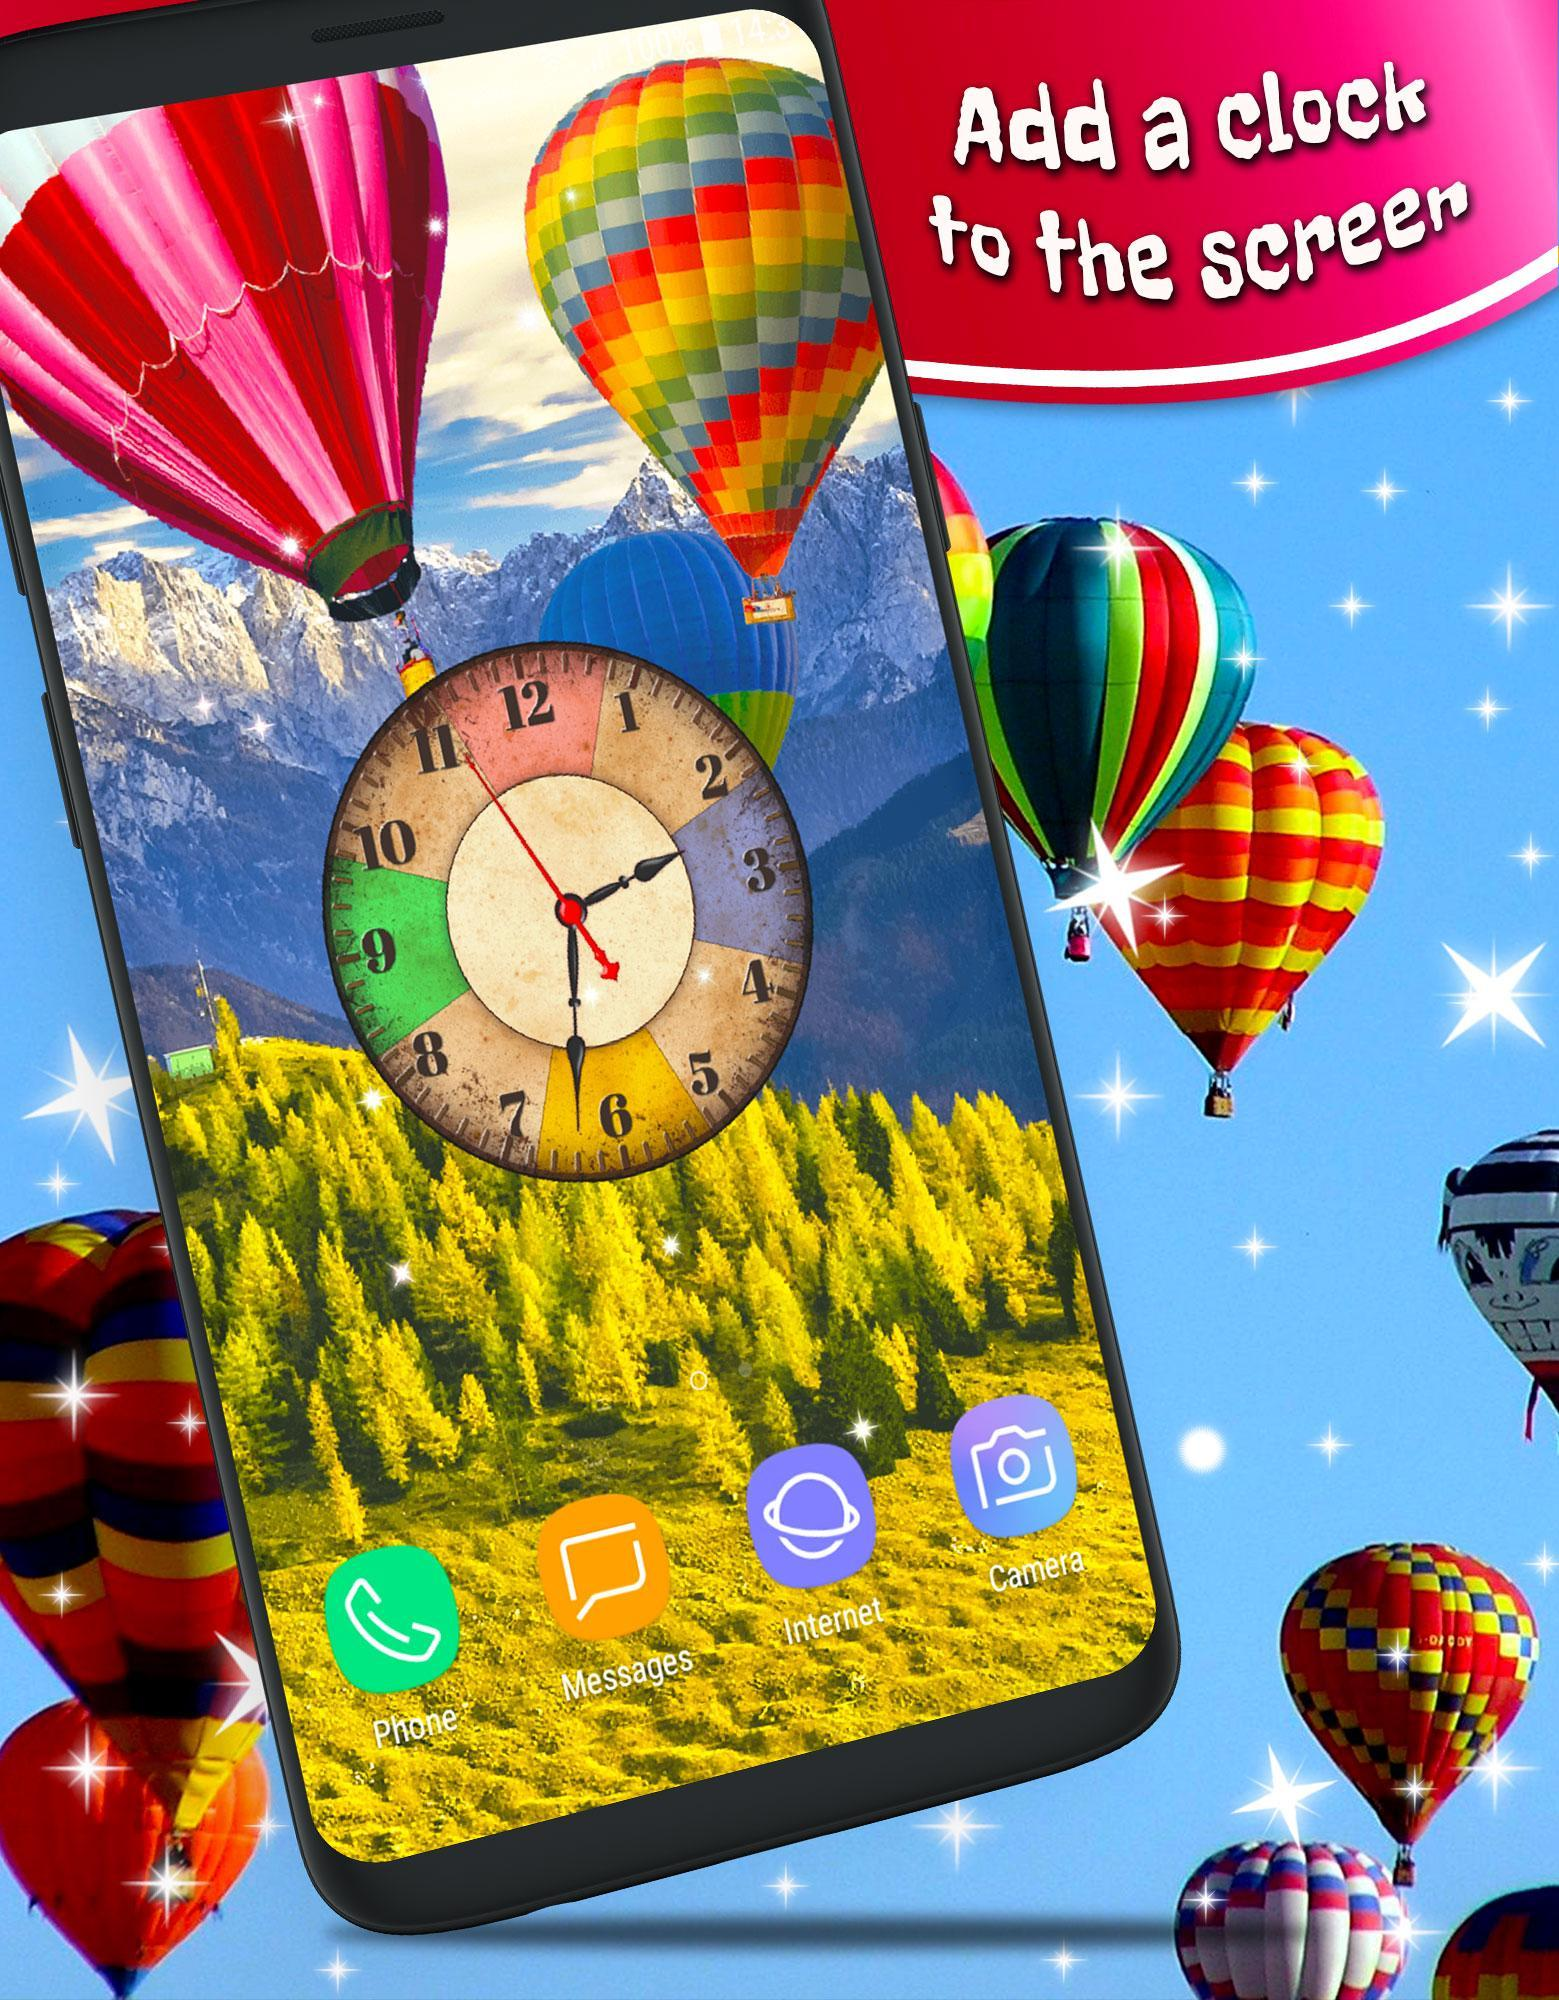 Hot Air Balloon Parallax 3d Live Wallpaper Hd For Android